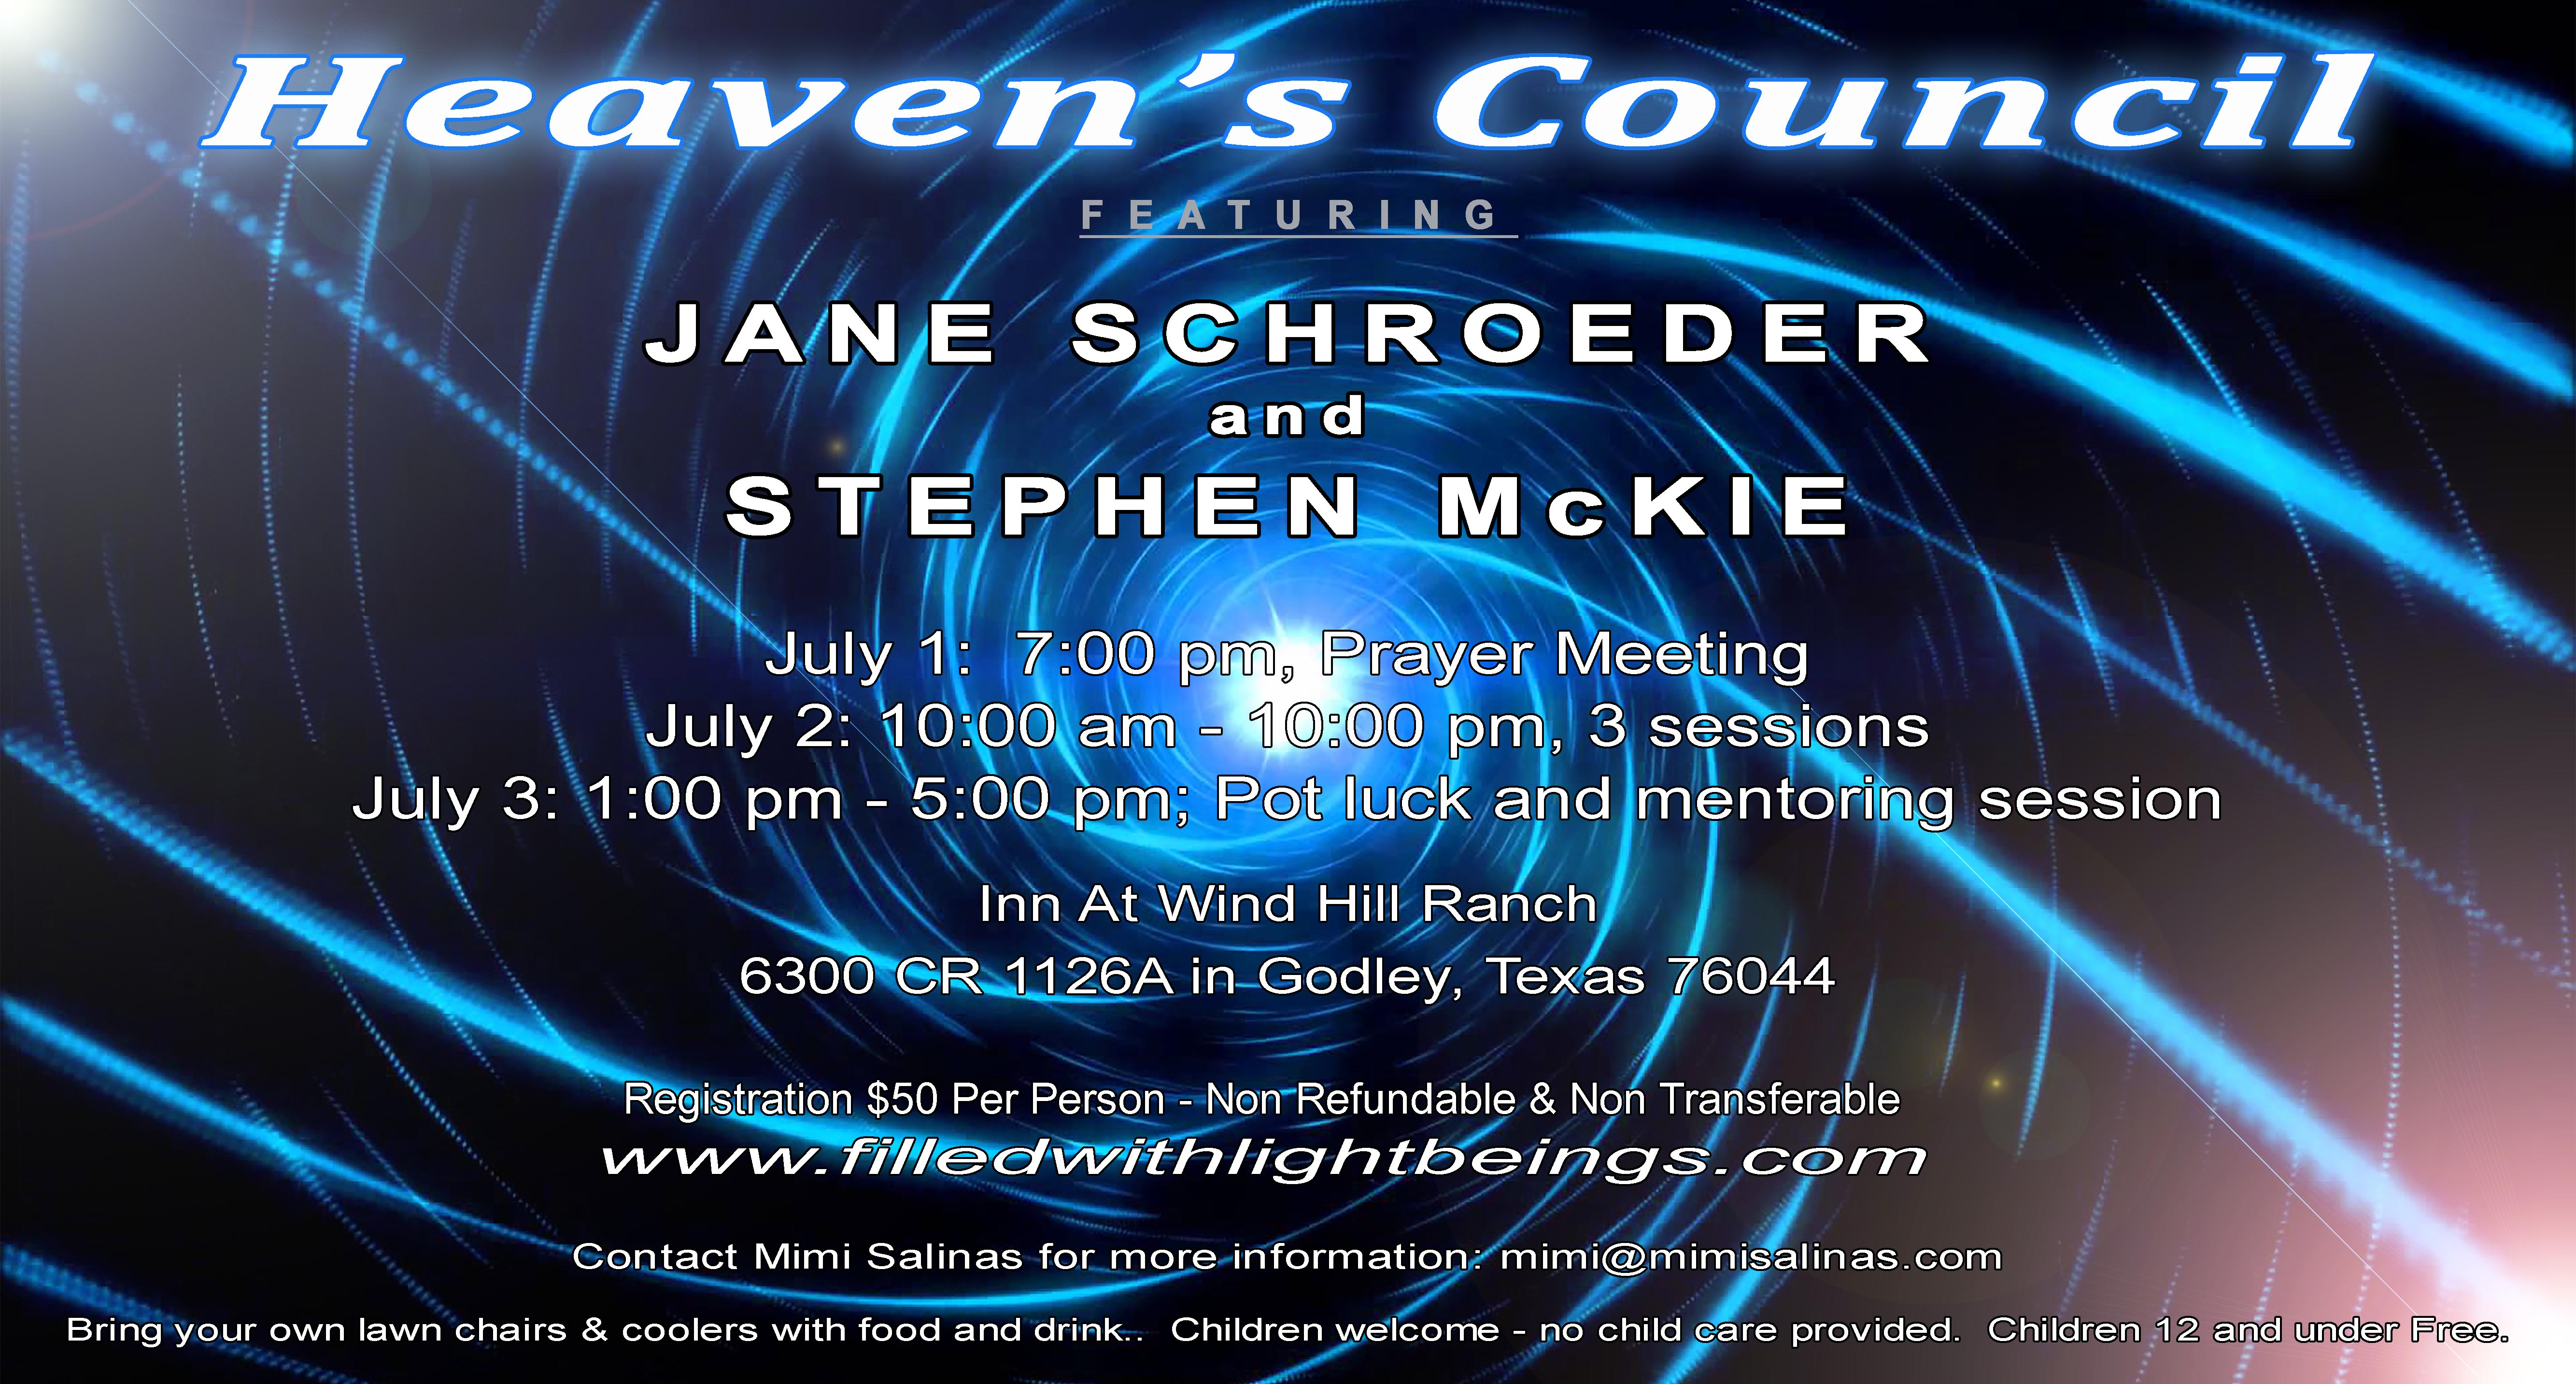 Heaven's Council CONFERENCE ADVERT